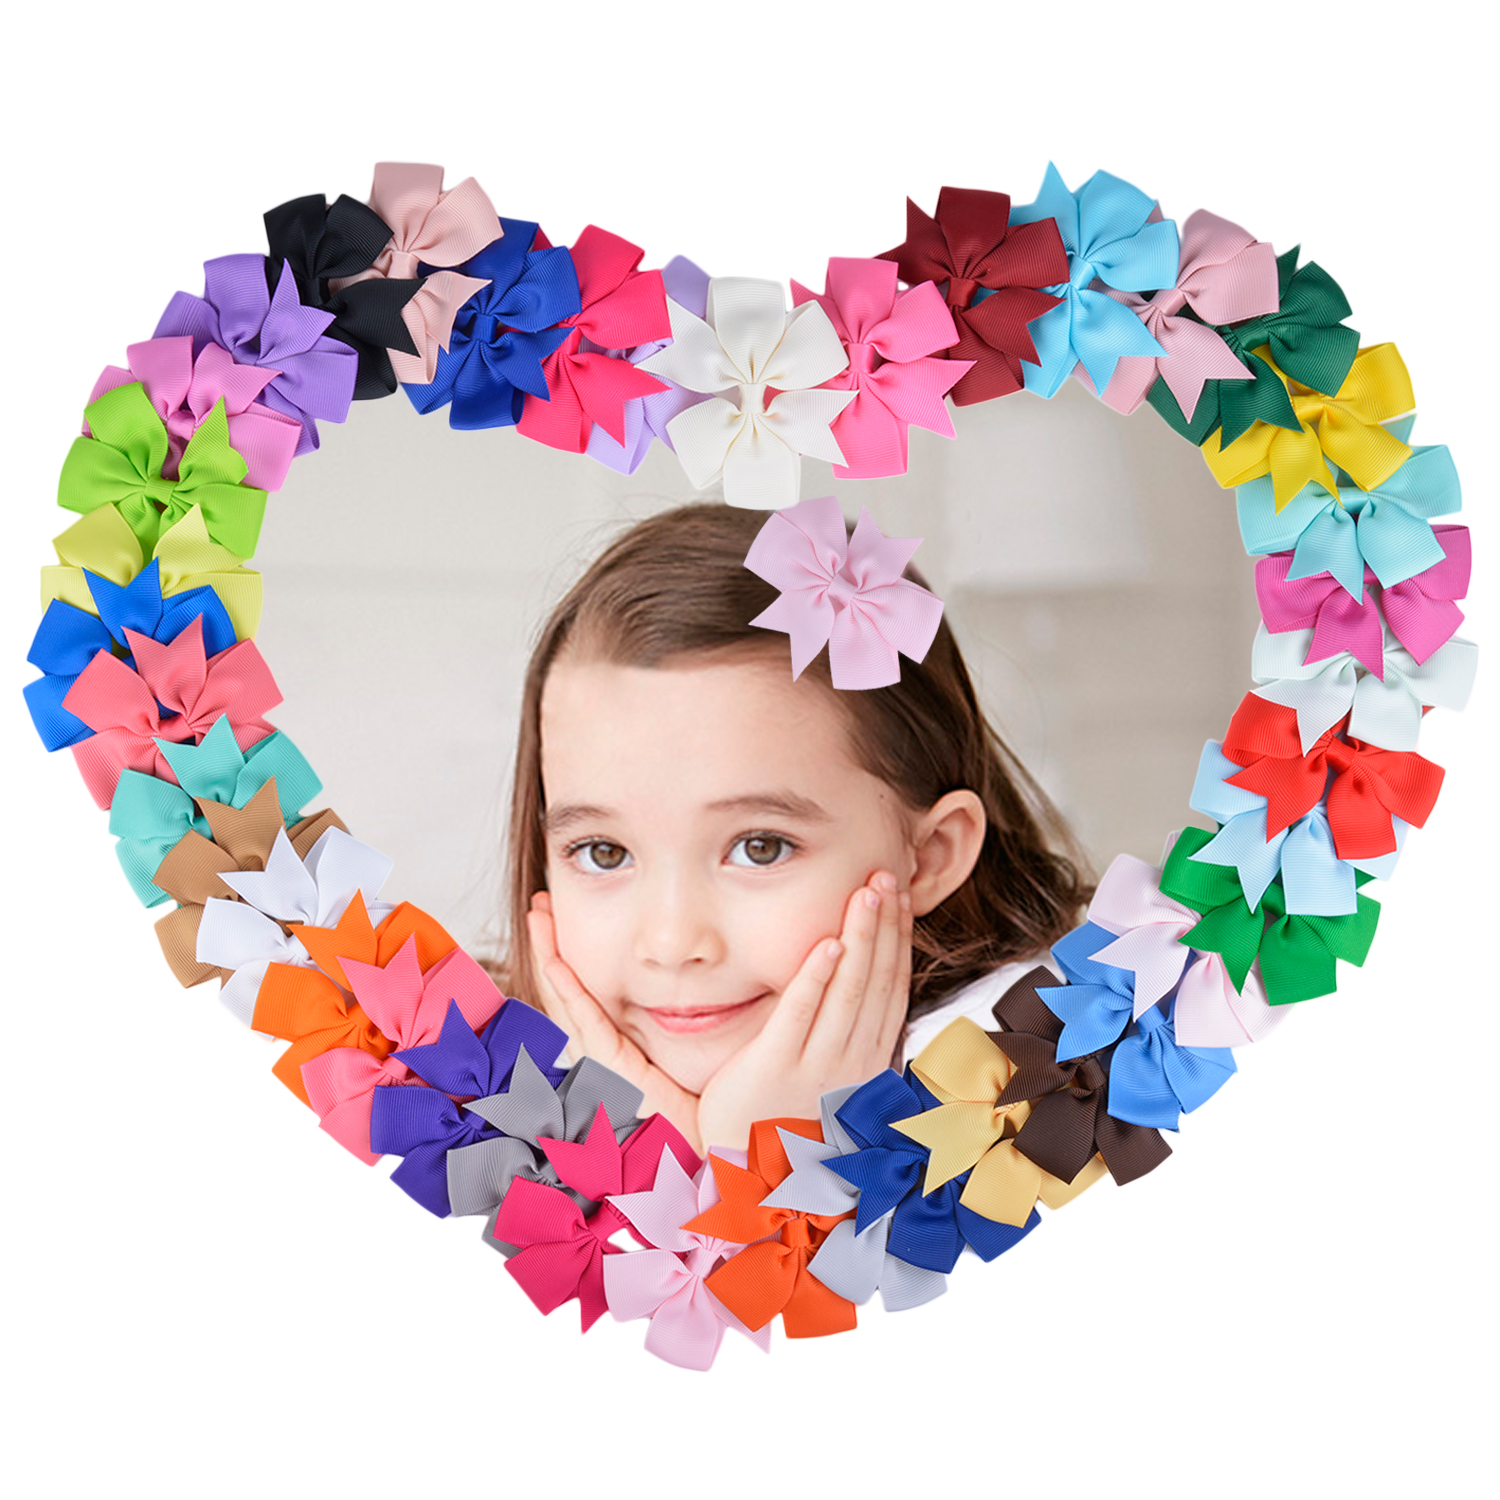 40 pcs Cute Bowknot Ribbon Bow Hair Clip Hairpin Girls Kids Teens Handmade Rainbow Dance Party Kids Boutique Hair Grips for Teen hot 6pcs lot girls kids fashion cute candy hairpin bowknot hair clip page 4 page 9 page 1 page 7